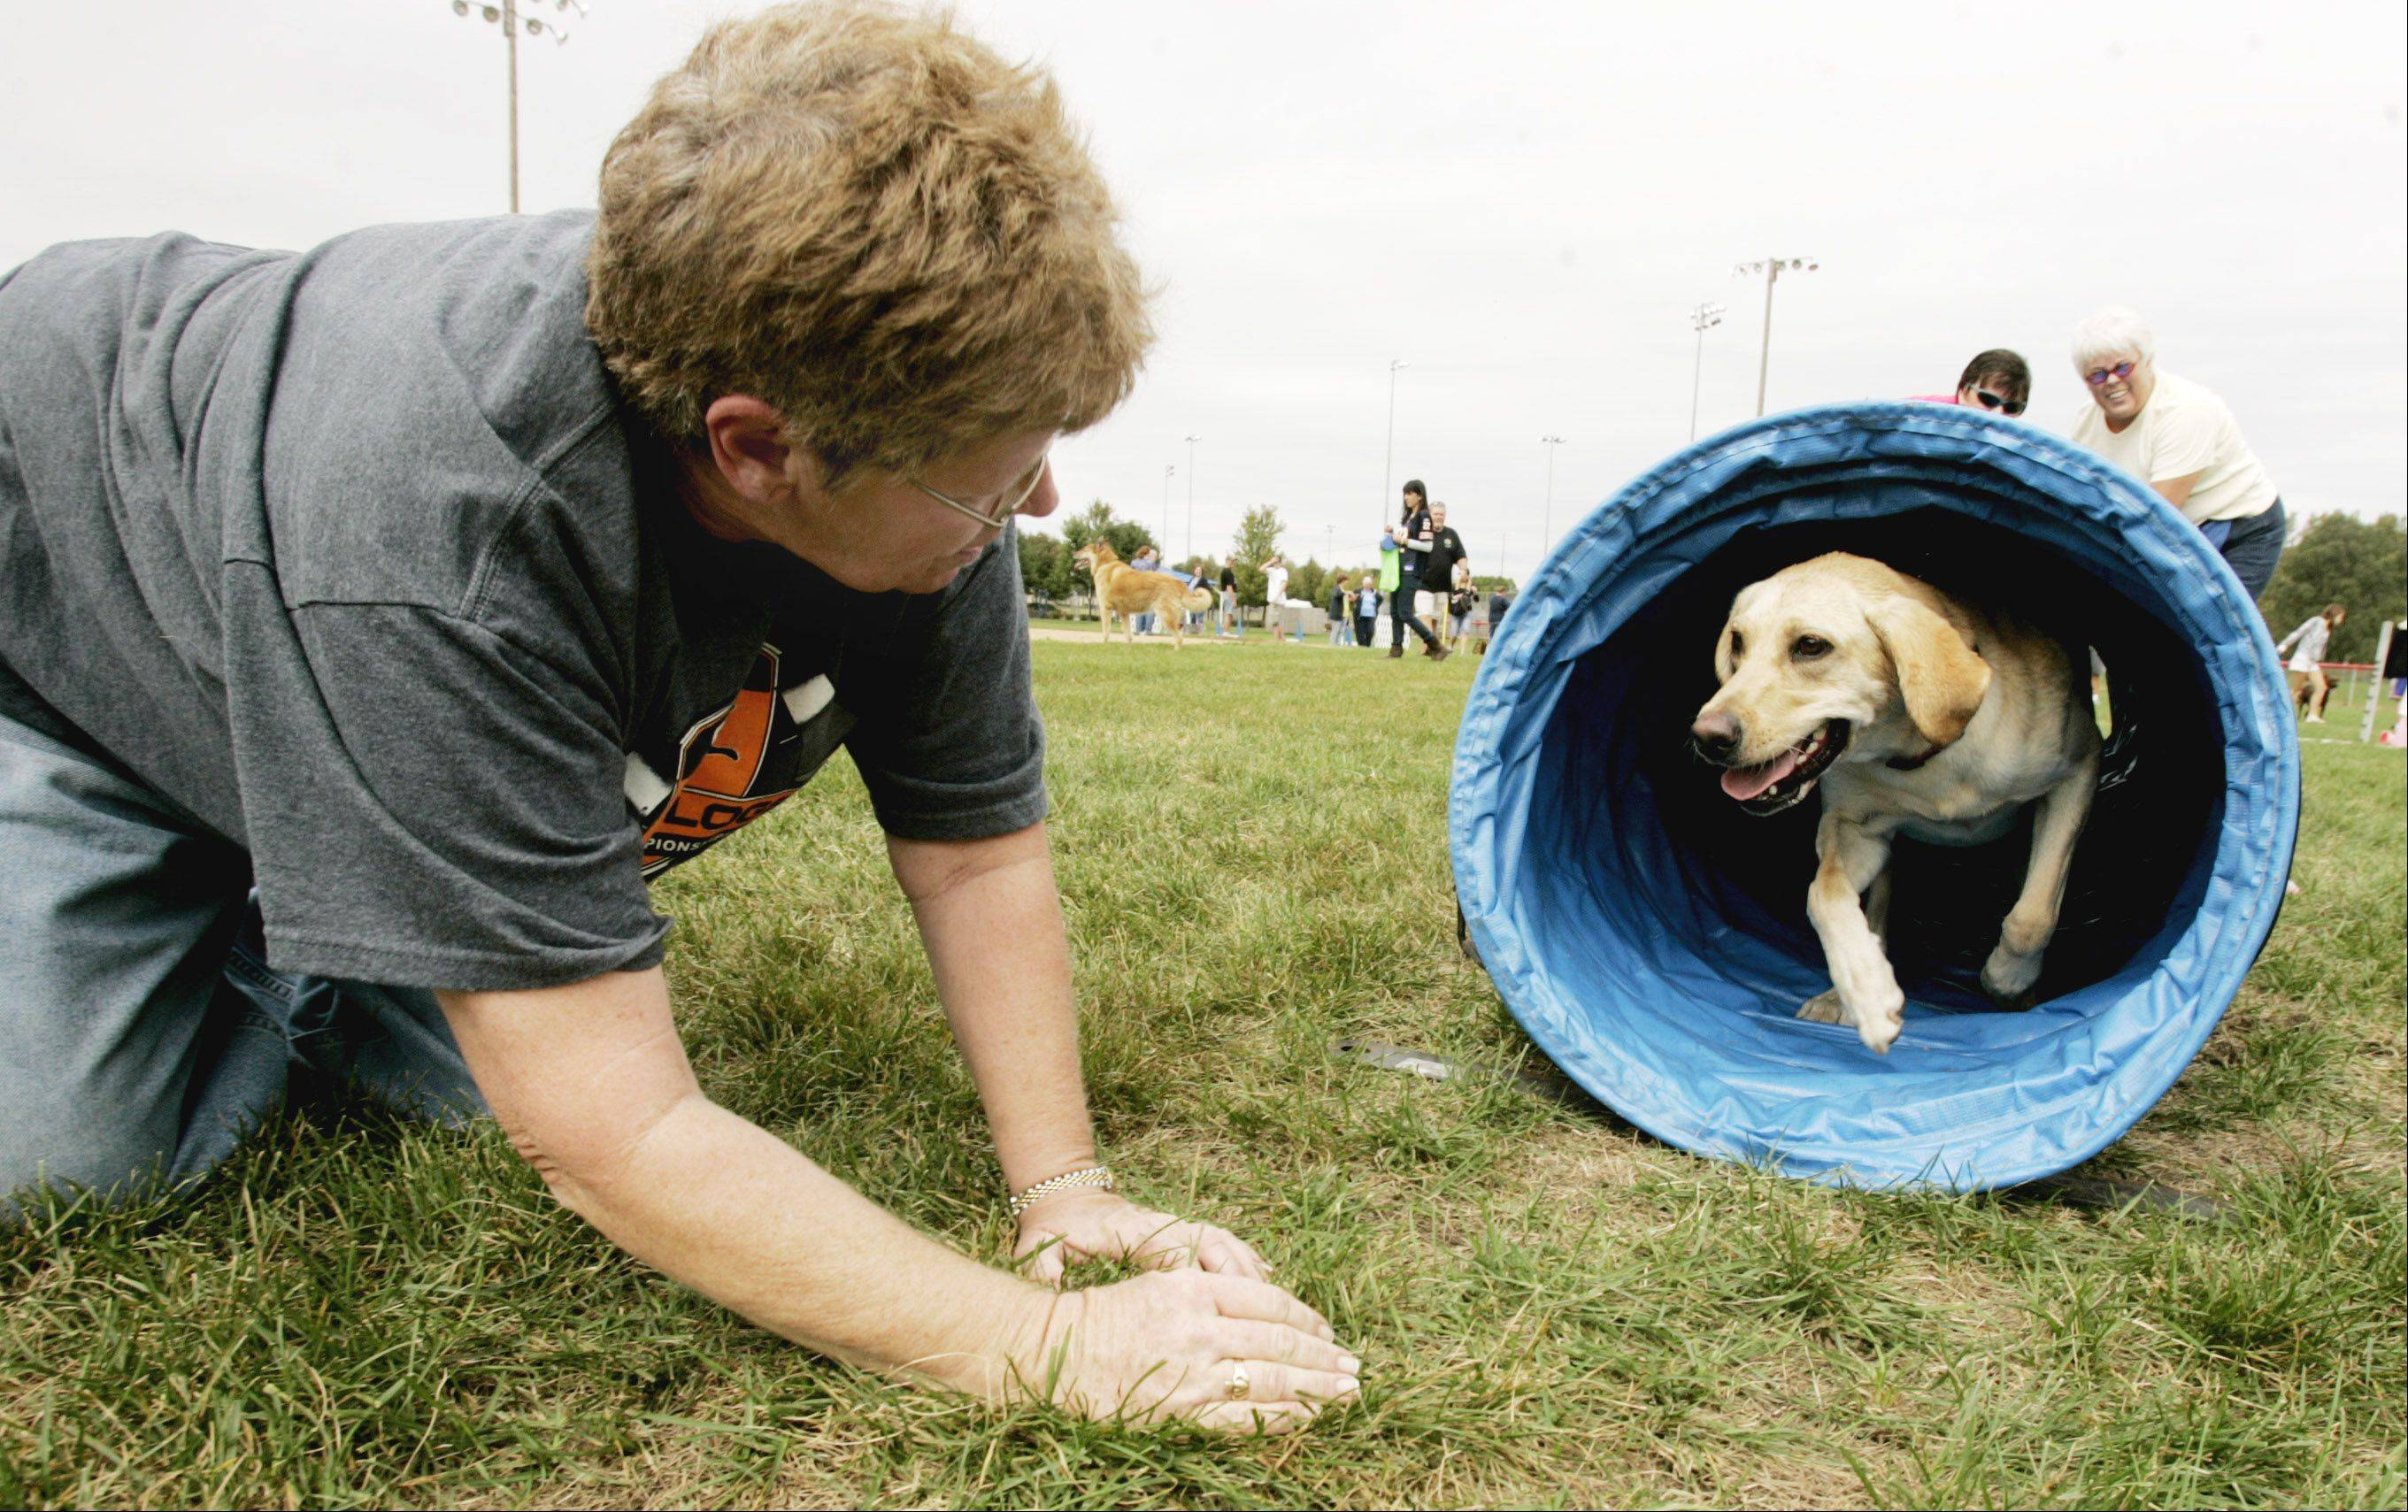 Maureen Lydon of Chicago waits for her dog, Molly, as she going through an agility tunnel last year at the CSBarks festival at Armstrong Park.